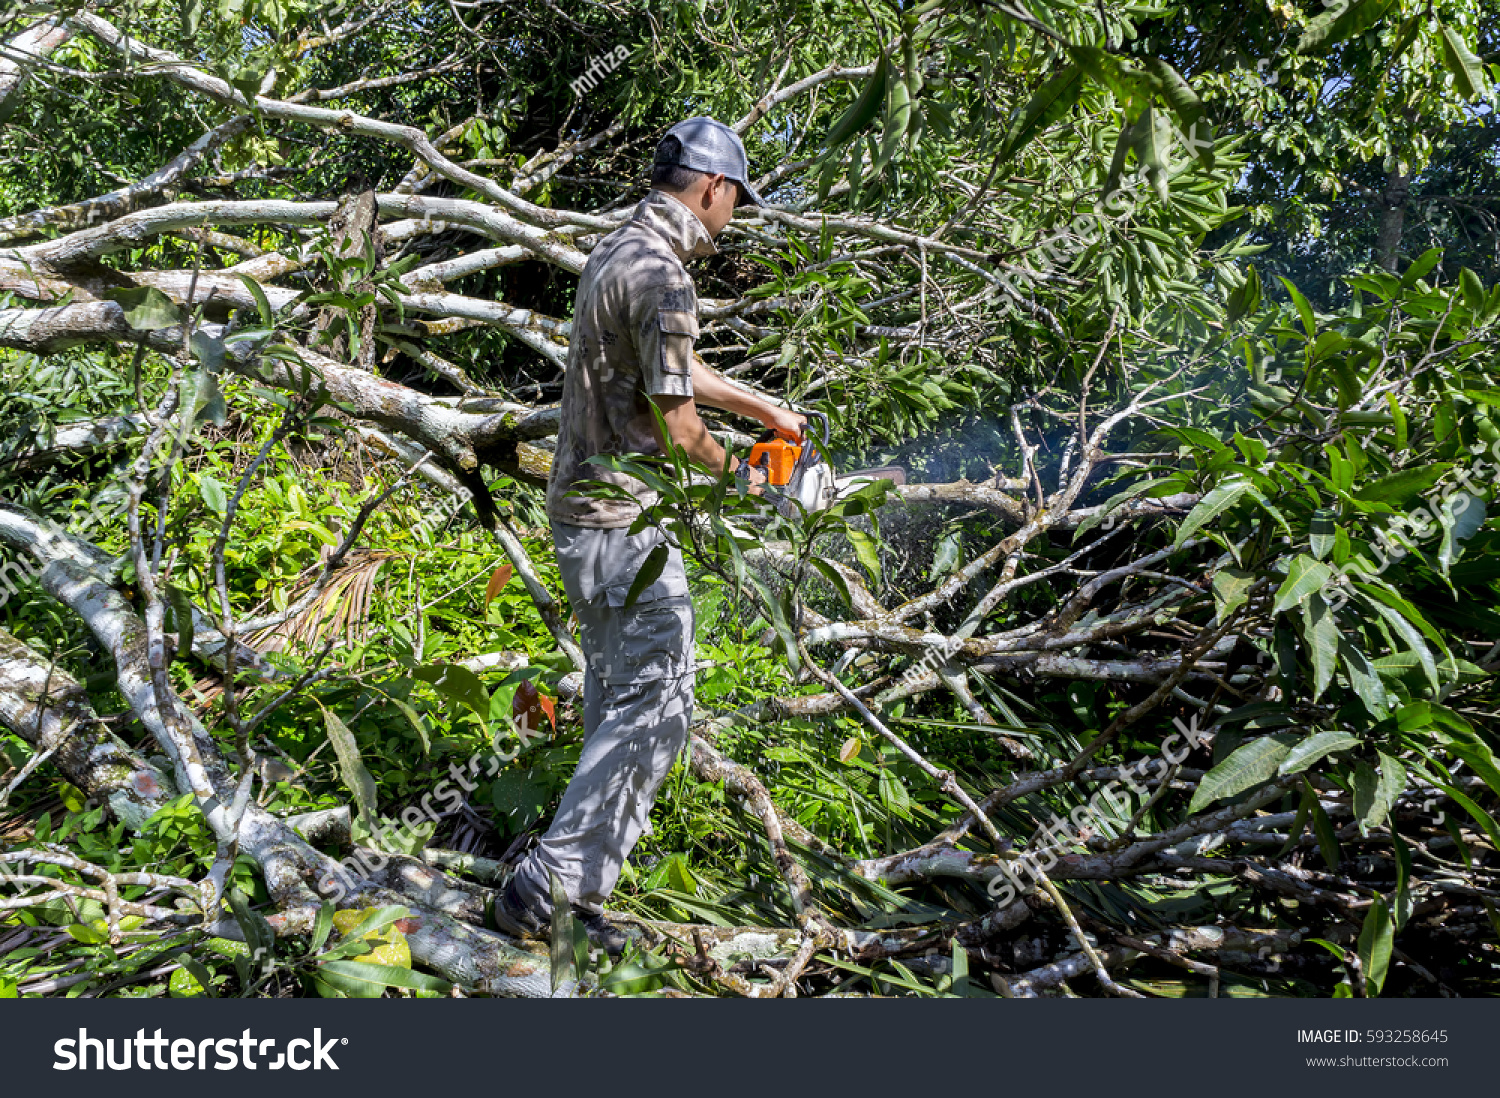 Tractor Man On Cutting Trees : Man cutting trees using electrical chainsaw stock photo